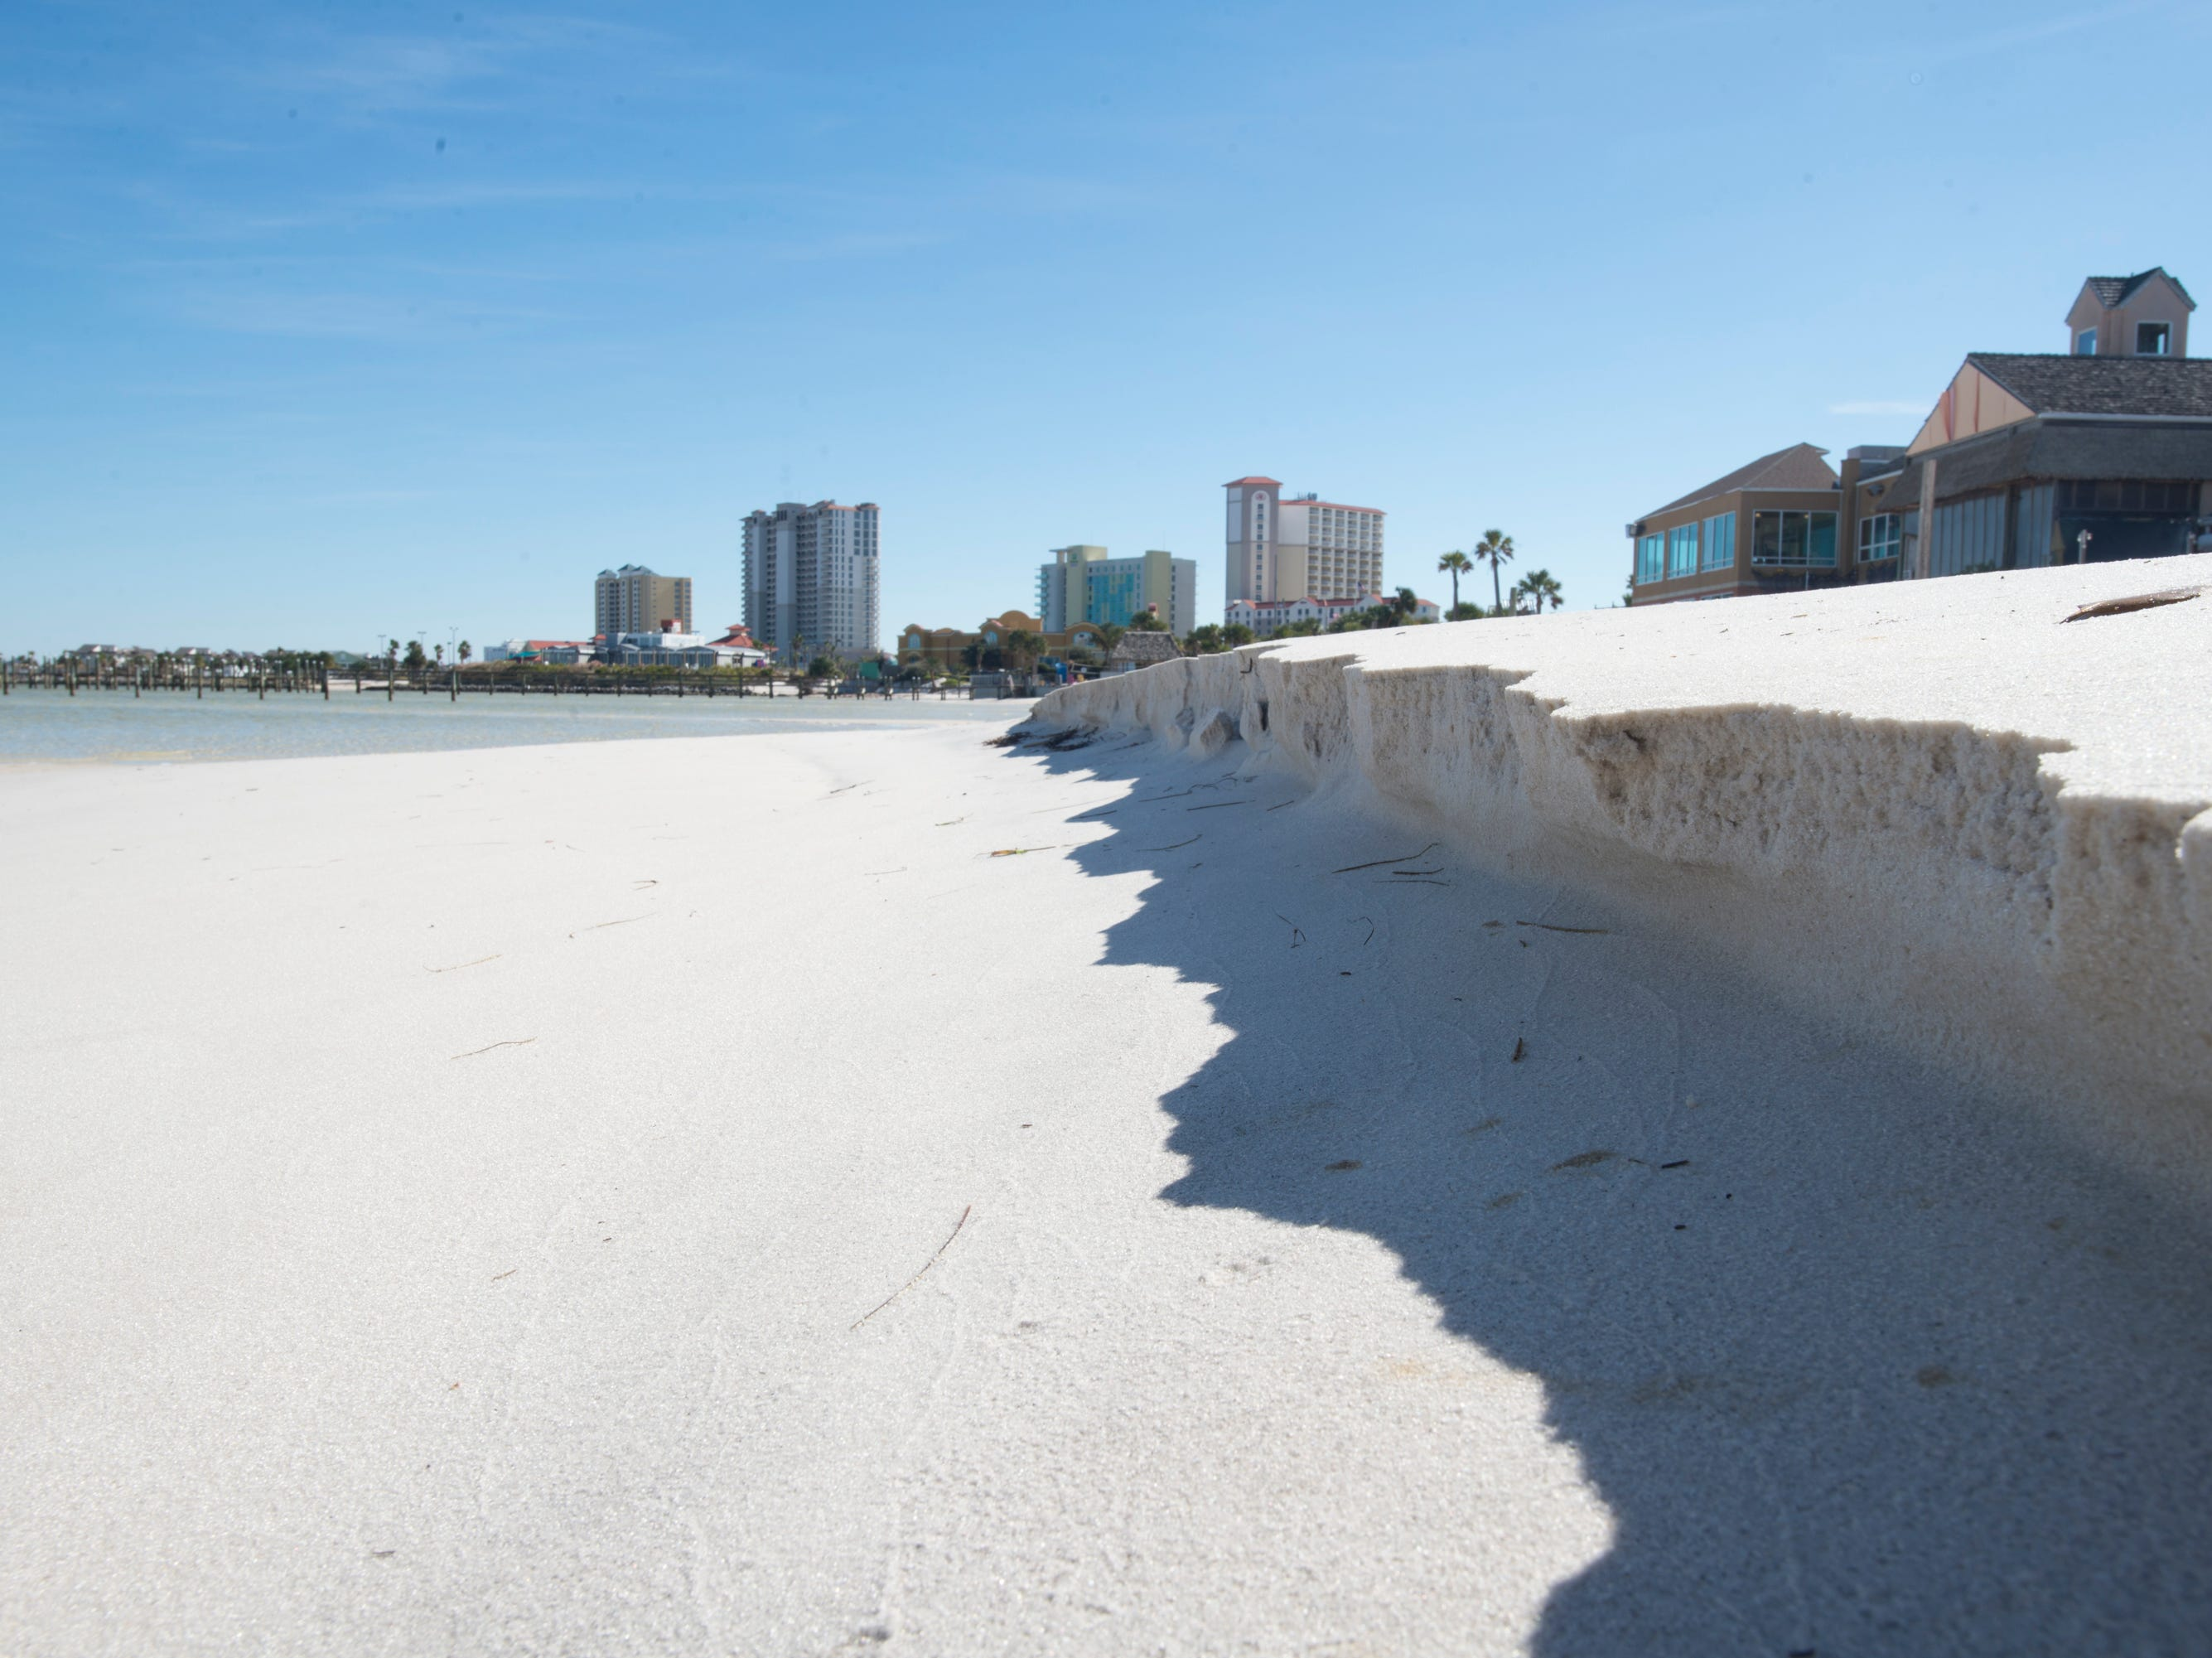 Quietwater Beach in Pensacola on Tuesday, November 27, 2018.  Beach leaders plan to widen Little Sabine and use spoils to renourish Quietwater Beach, the busy beach area behind the Boardwalk Shopping Center.